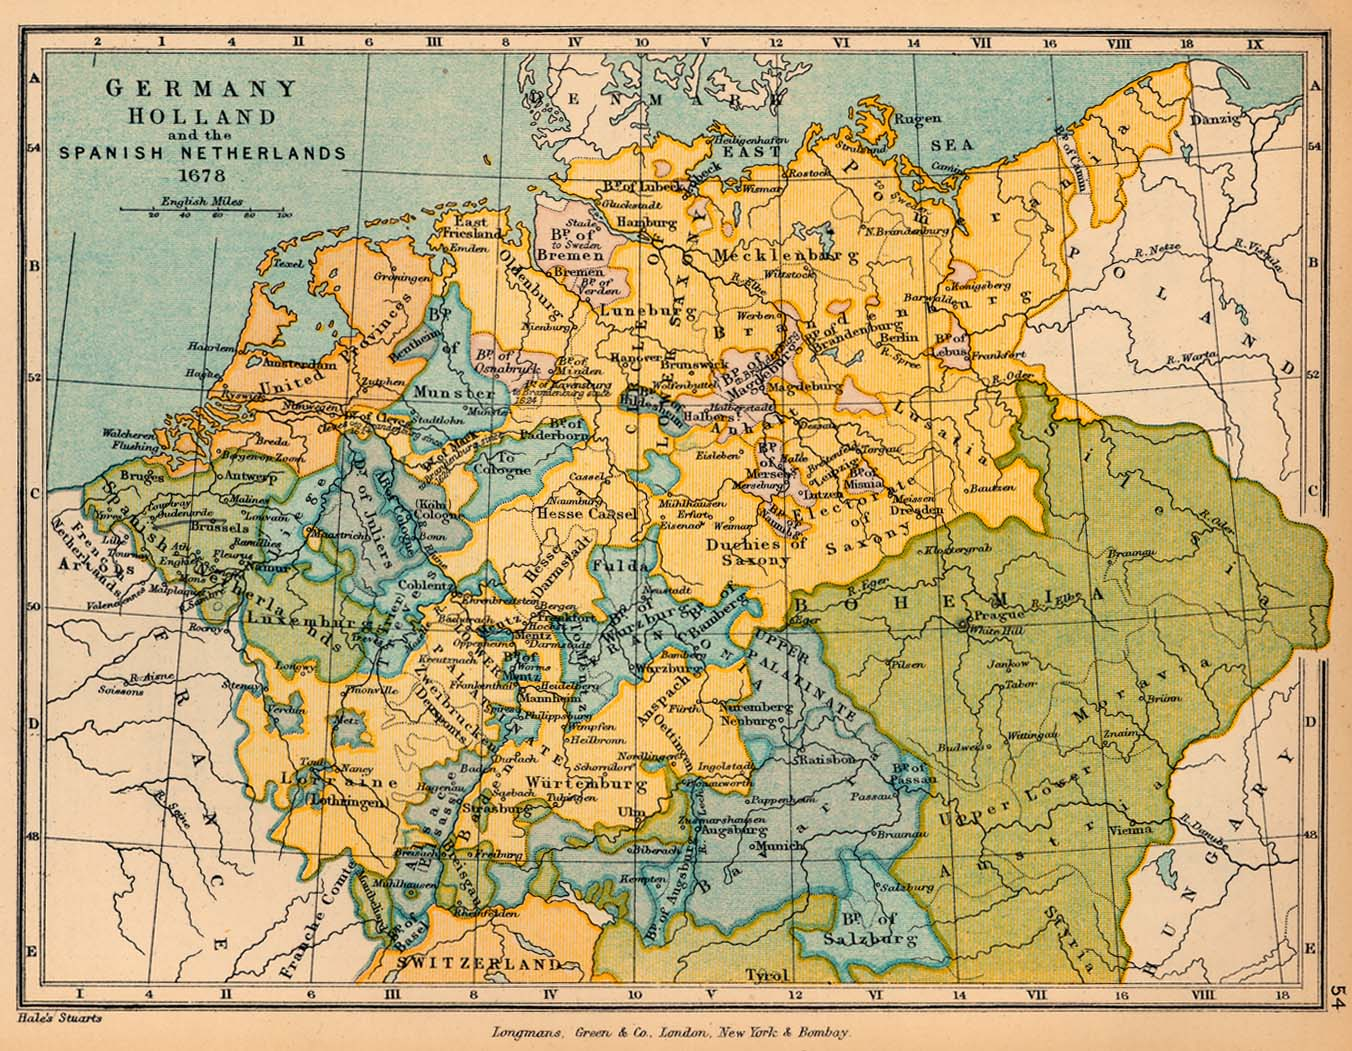 Map of Germany, Holland and the Spanish Netherlands in 1678